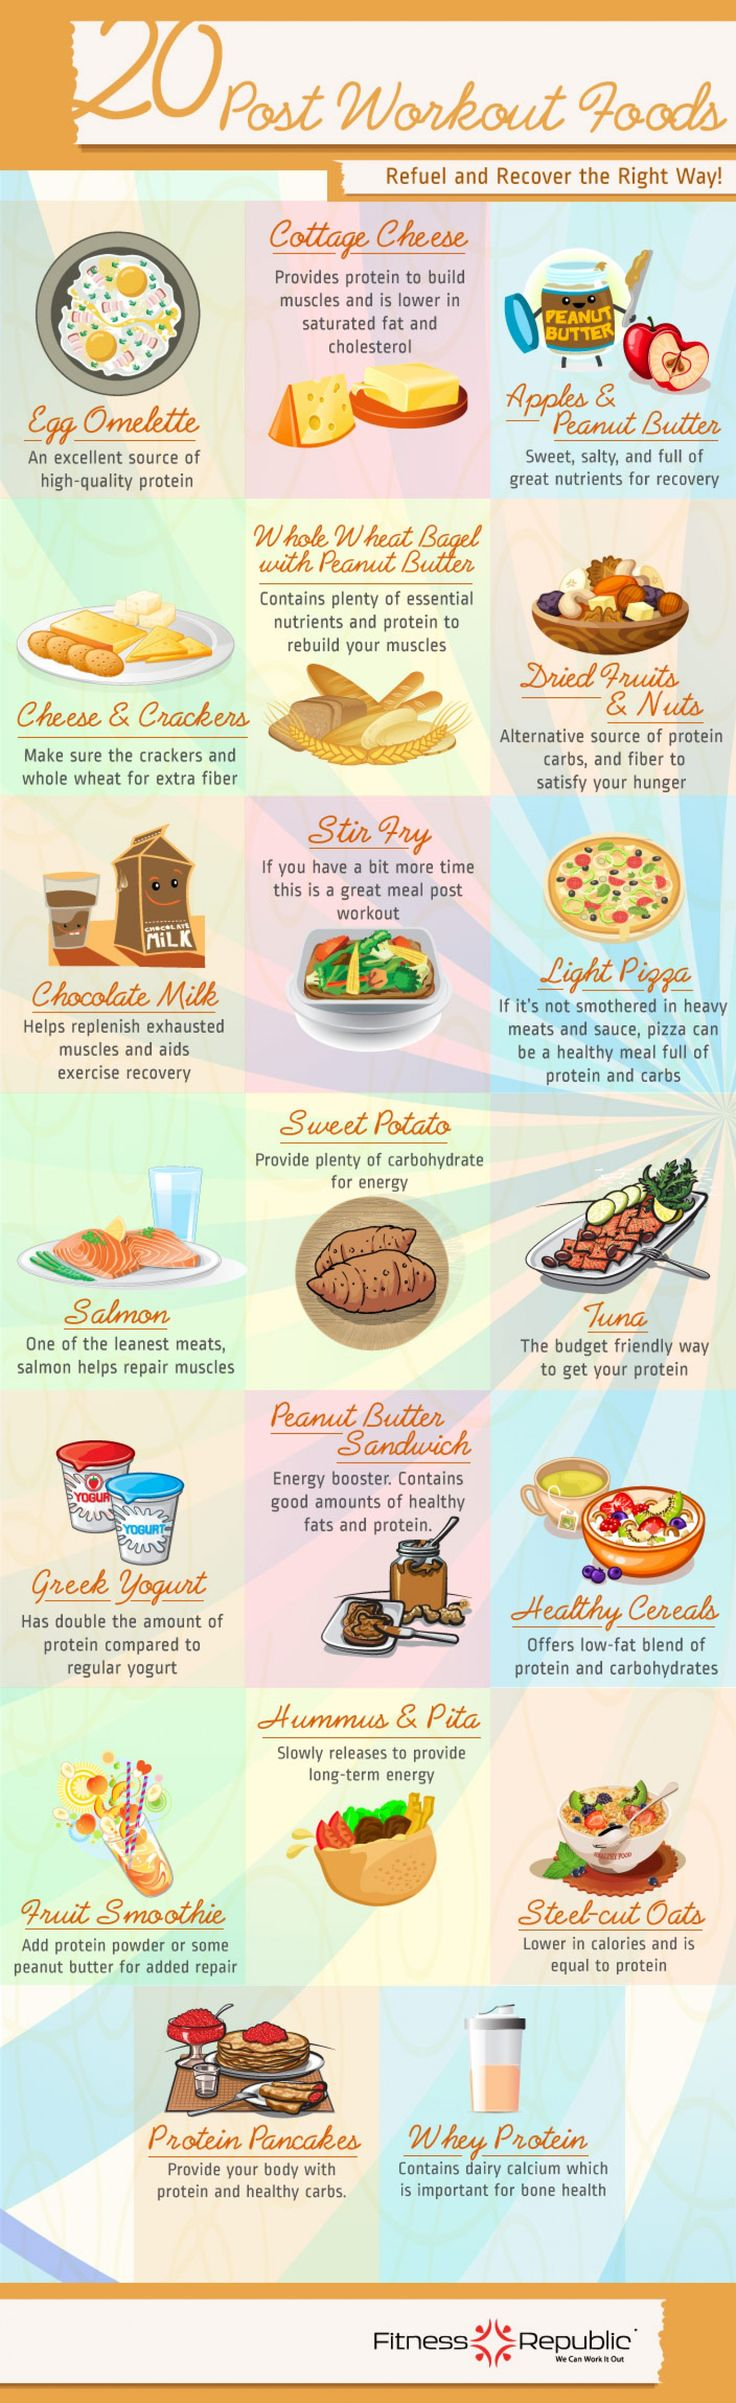 20 Post Workout Foods --shared by FitnessRepublicUS on Dec 10, 2014 - See more at: http://visual.ly/20-post-workout-foods#sthash.gscuHcFU.dpuf